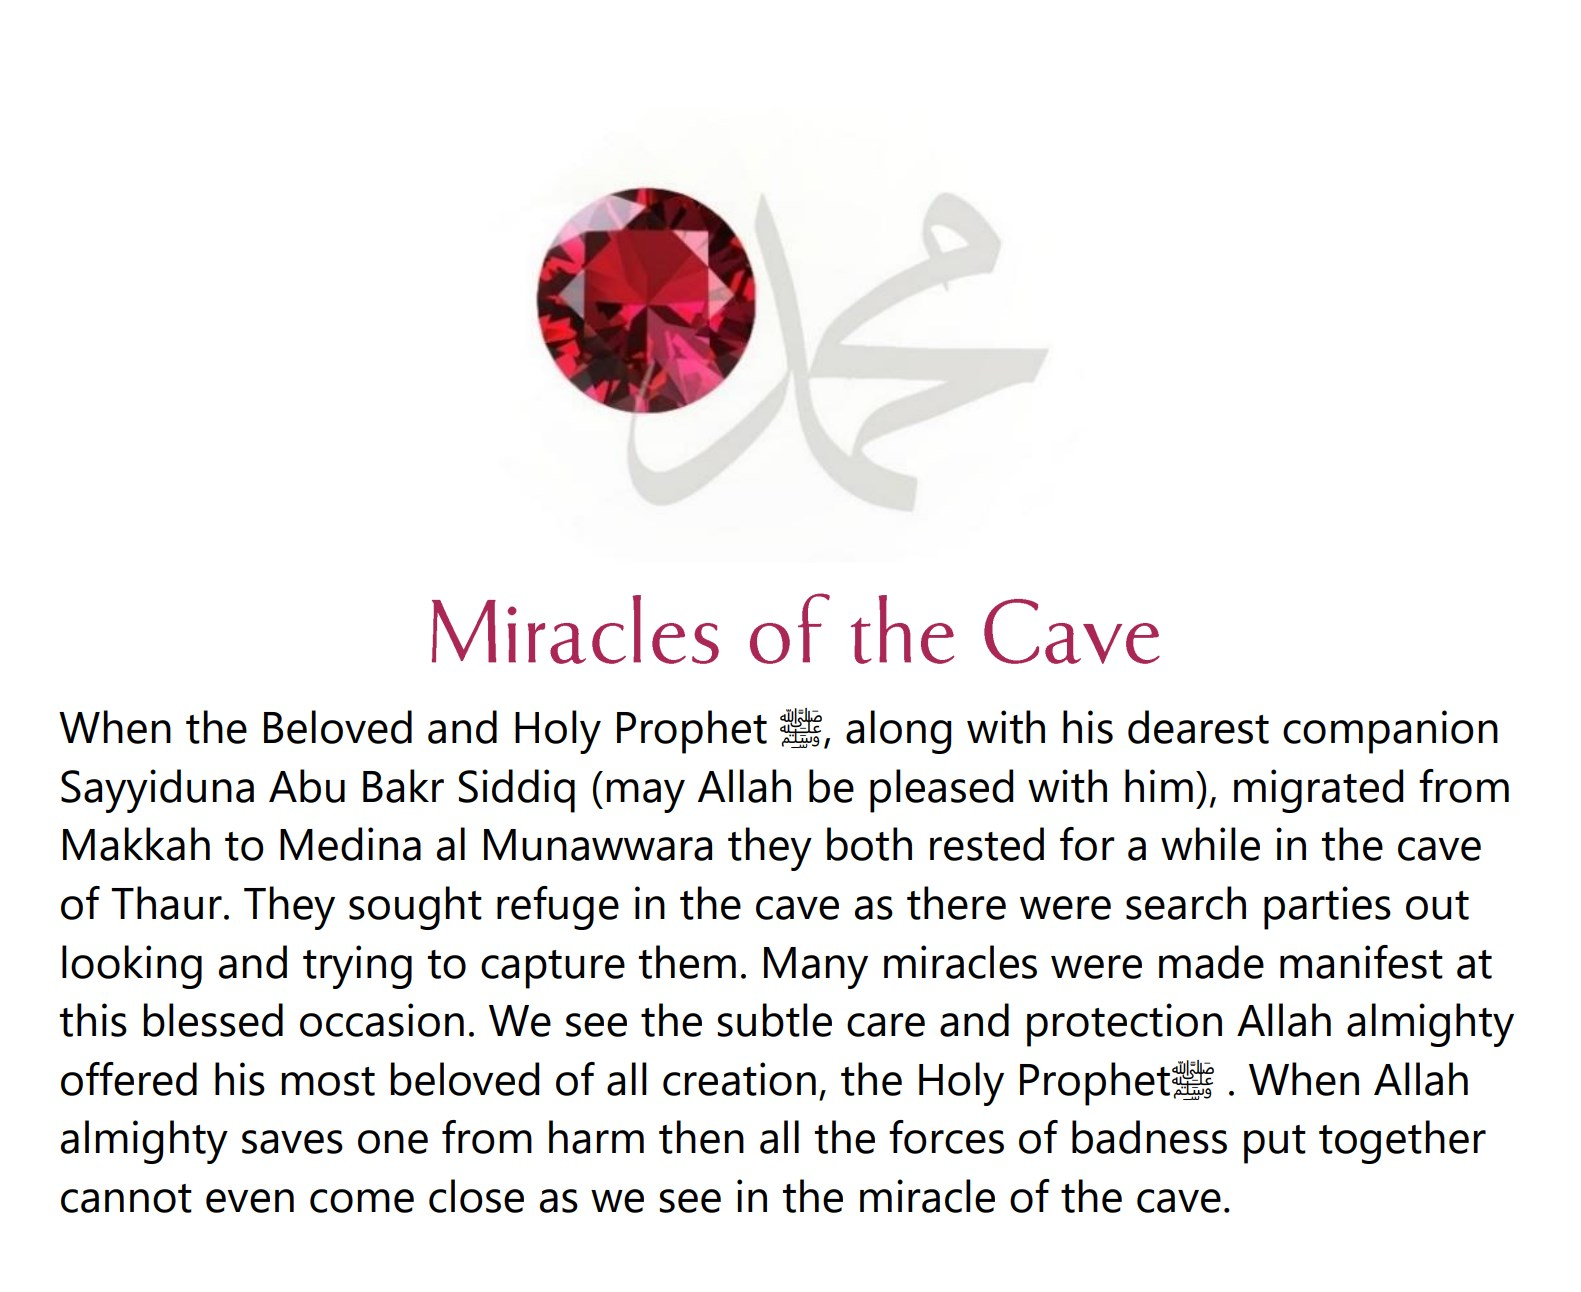 https://damas.nur.nu/wp-content/uploads/sites/8/2018/11/Miracles-of-the-Cave.jpg